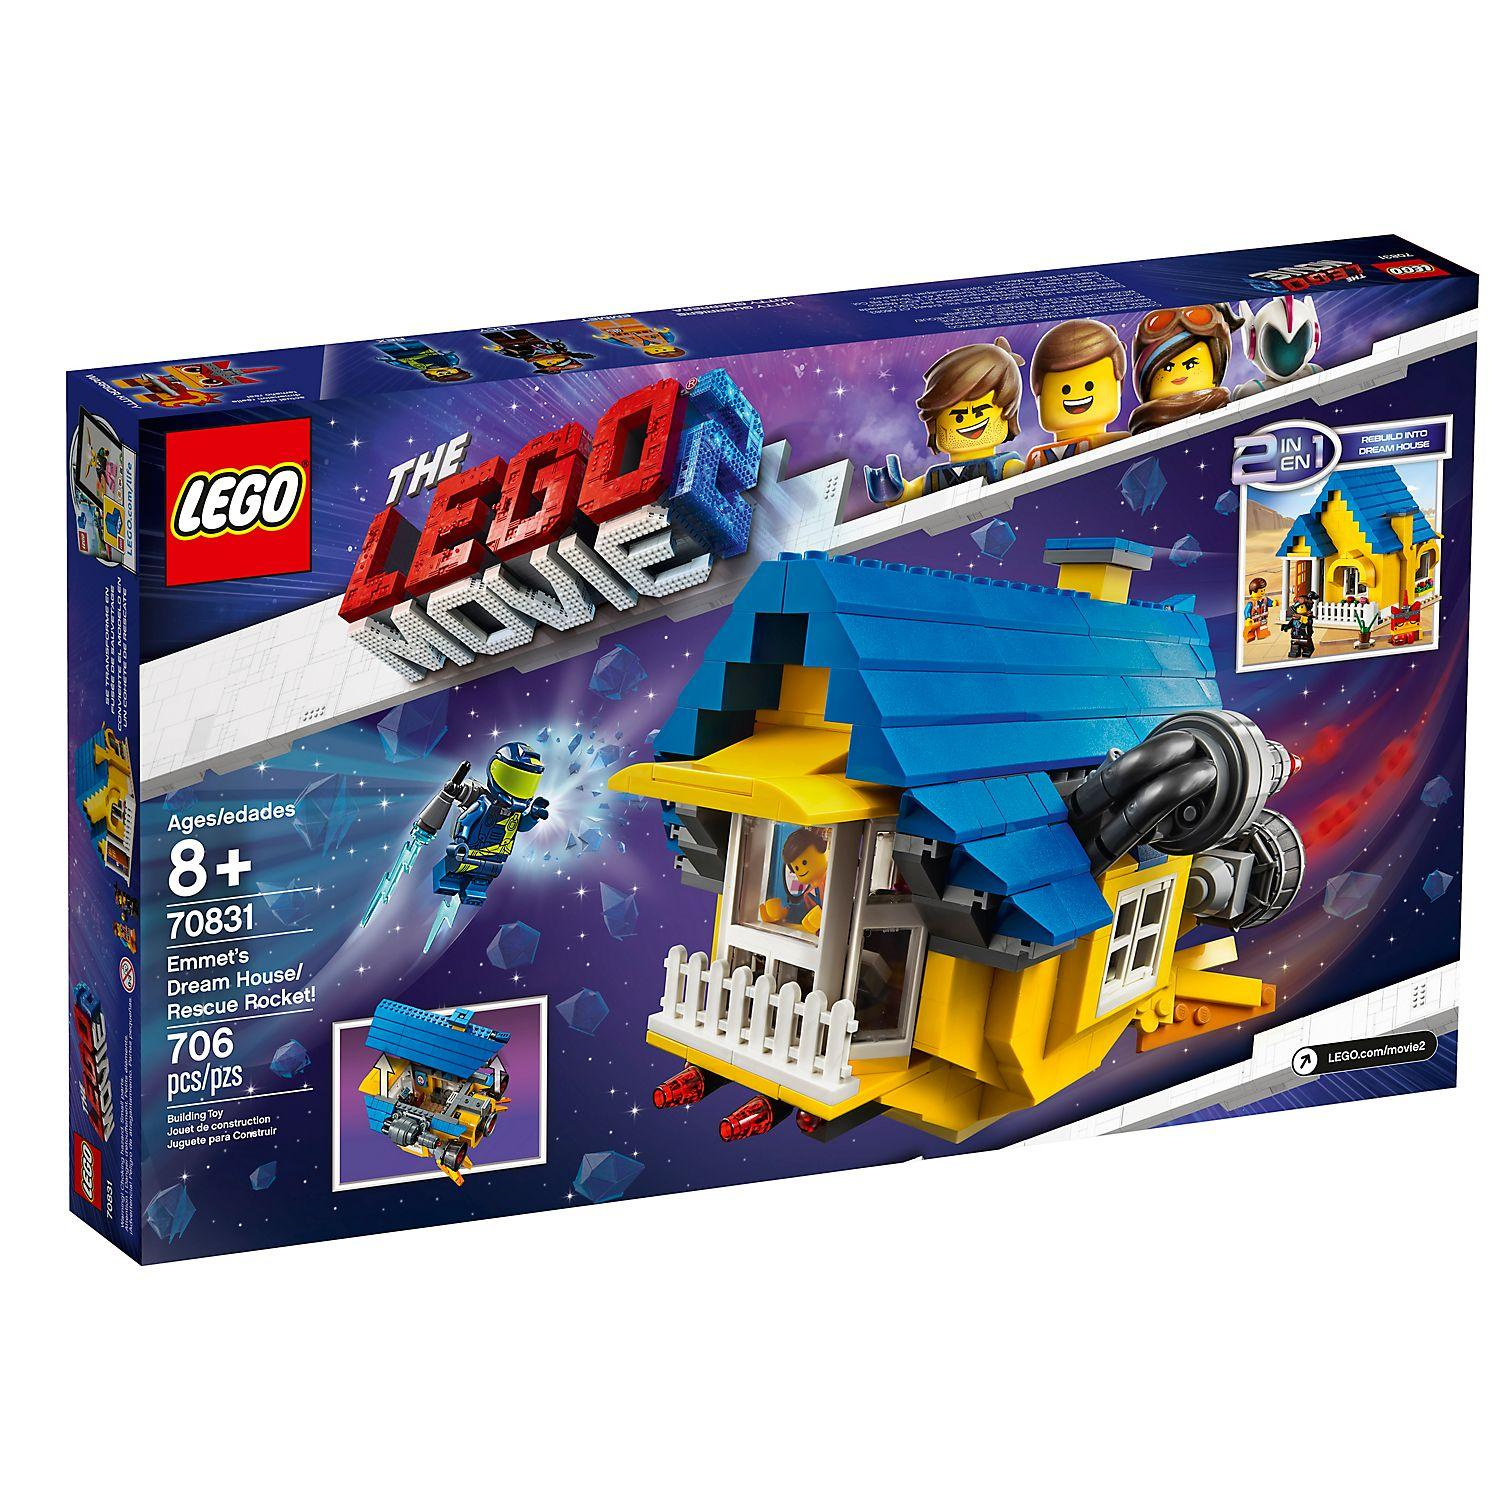 Lego Movie 2 Emmet's Dream House/Rescue Rocket! (70831)